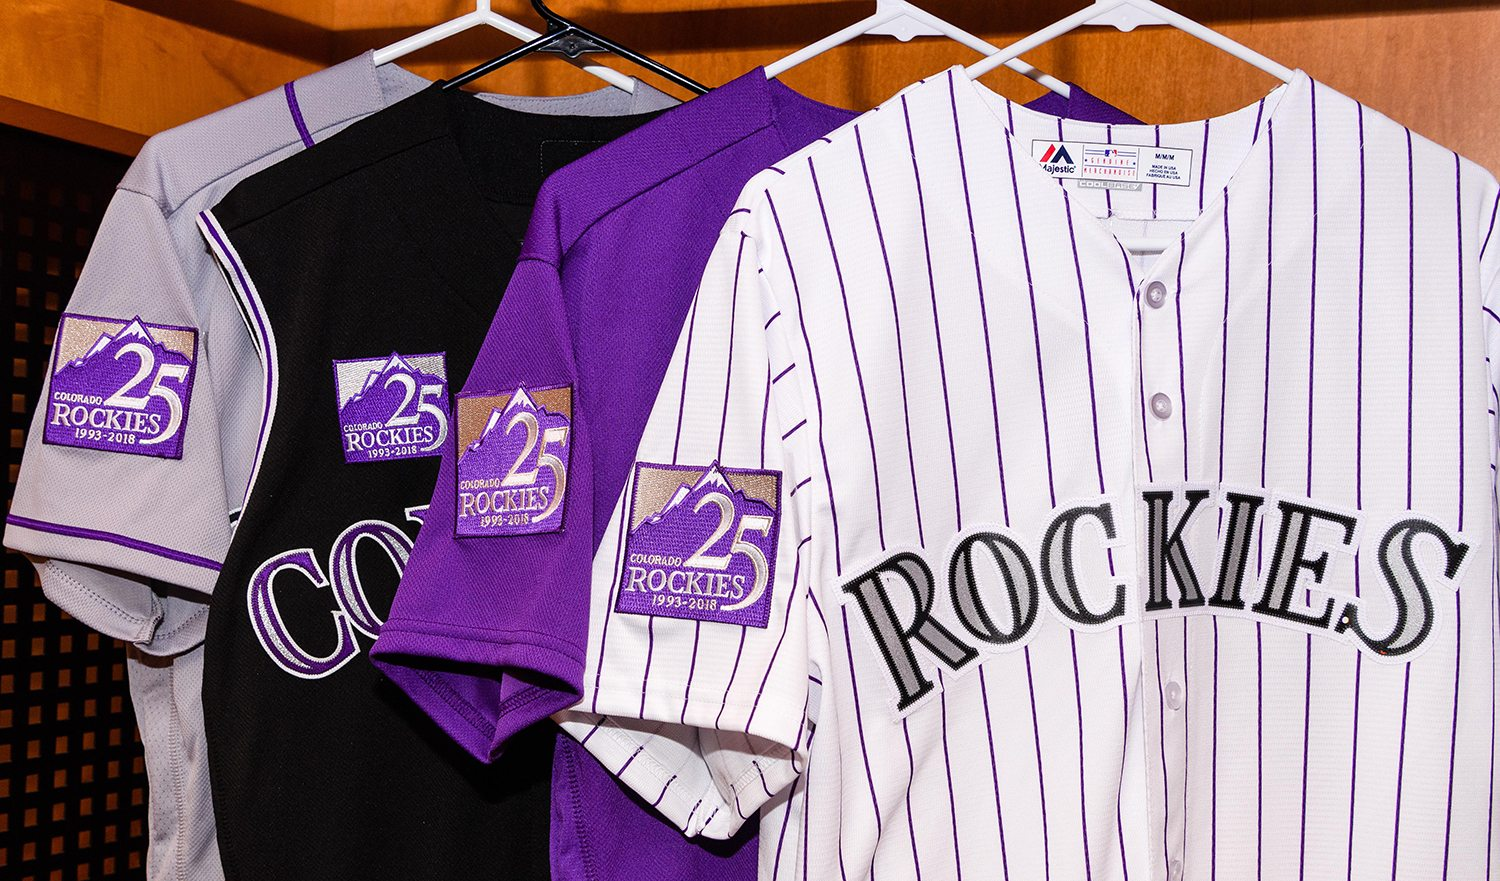 Get Your 25th Anniversary Season Rockies Gear